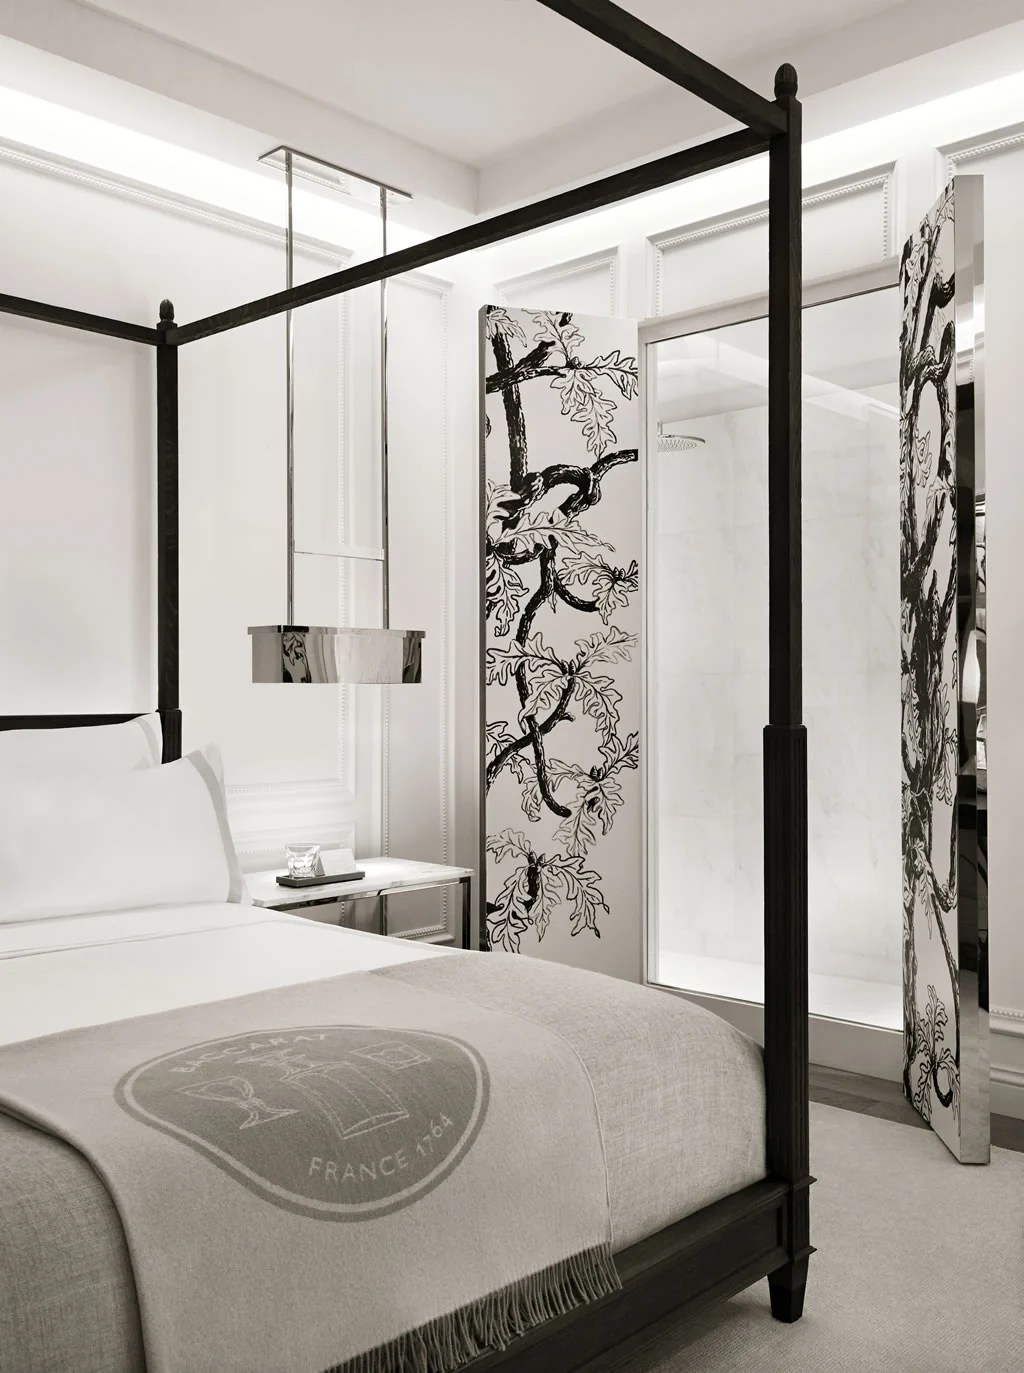 Suite Of The Week The Delightful Prestige Suite At The